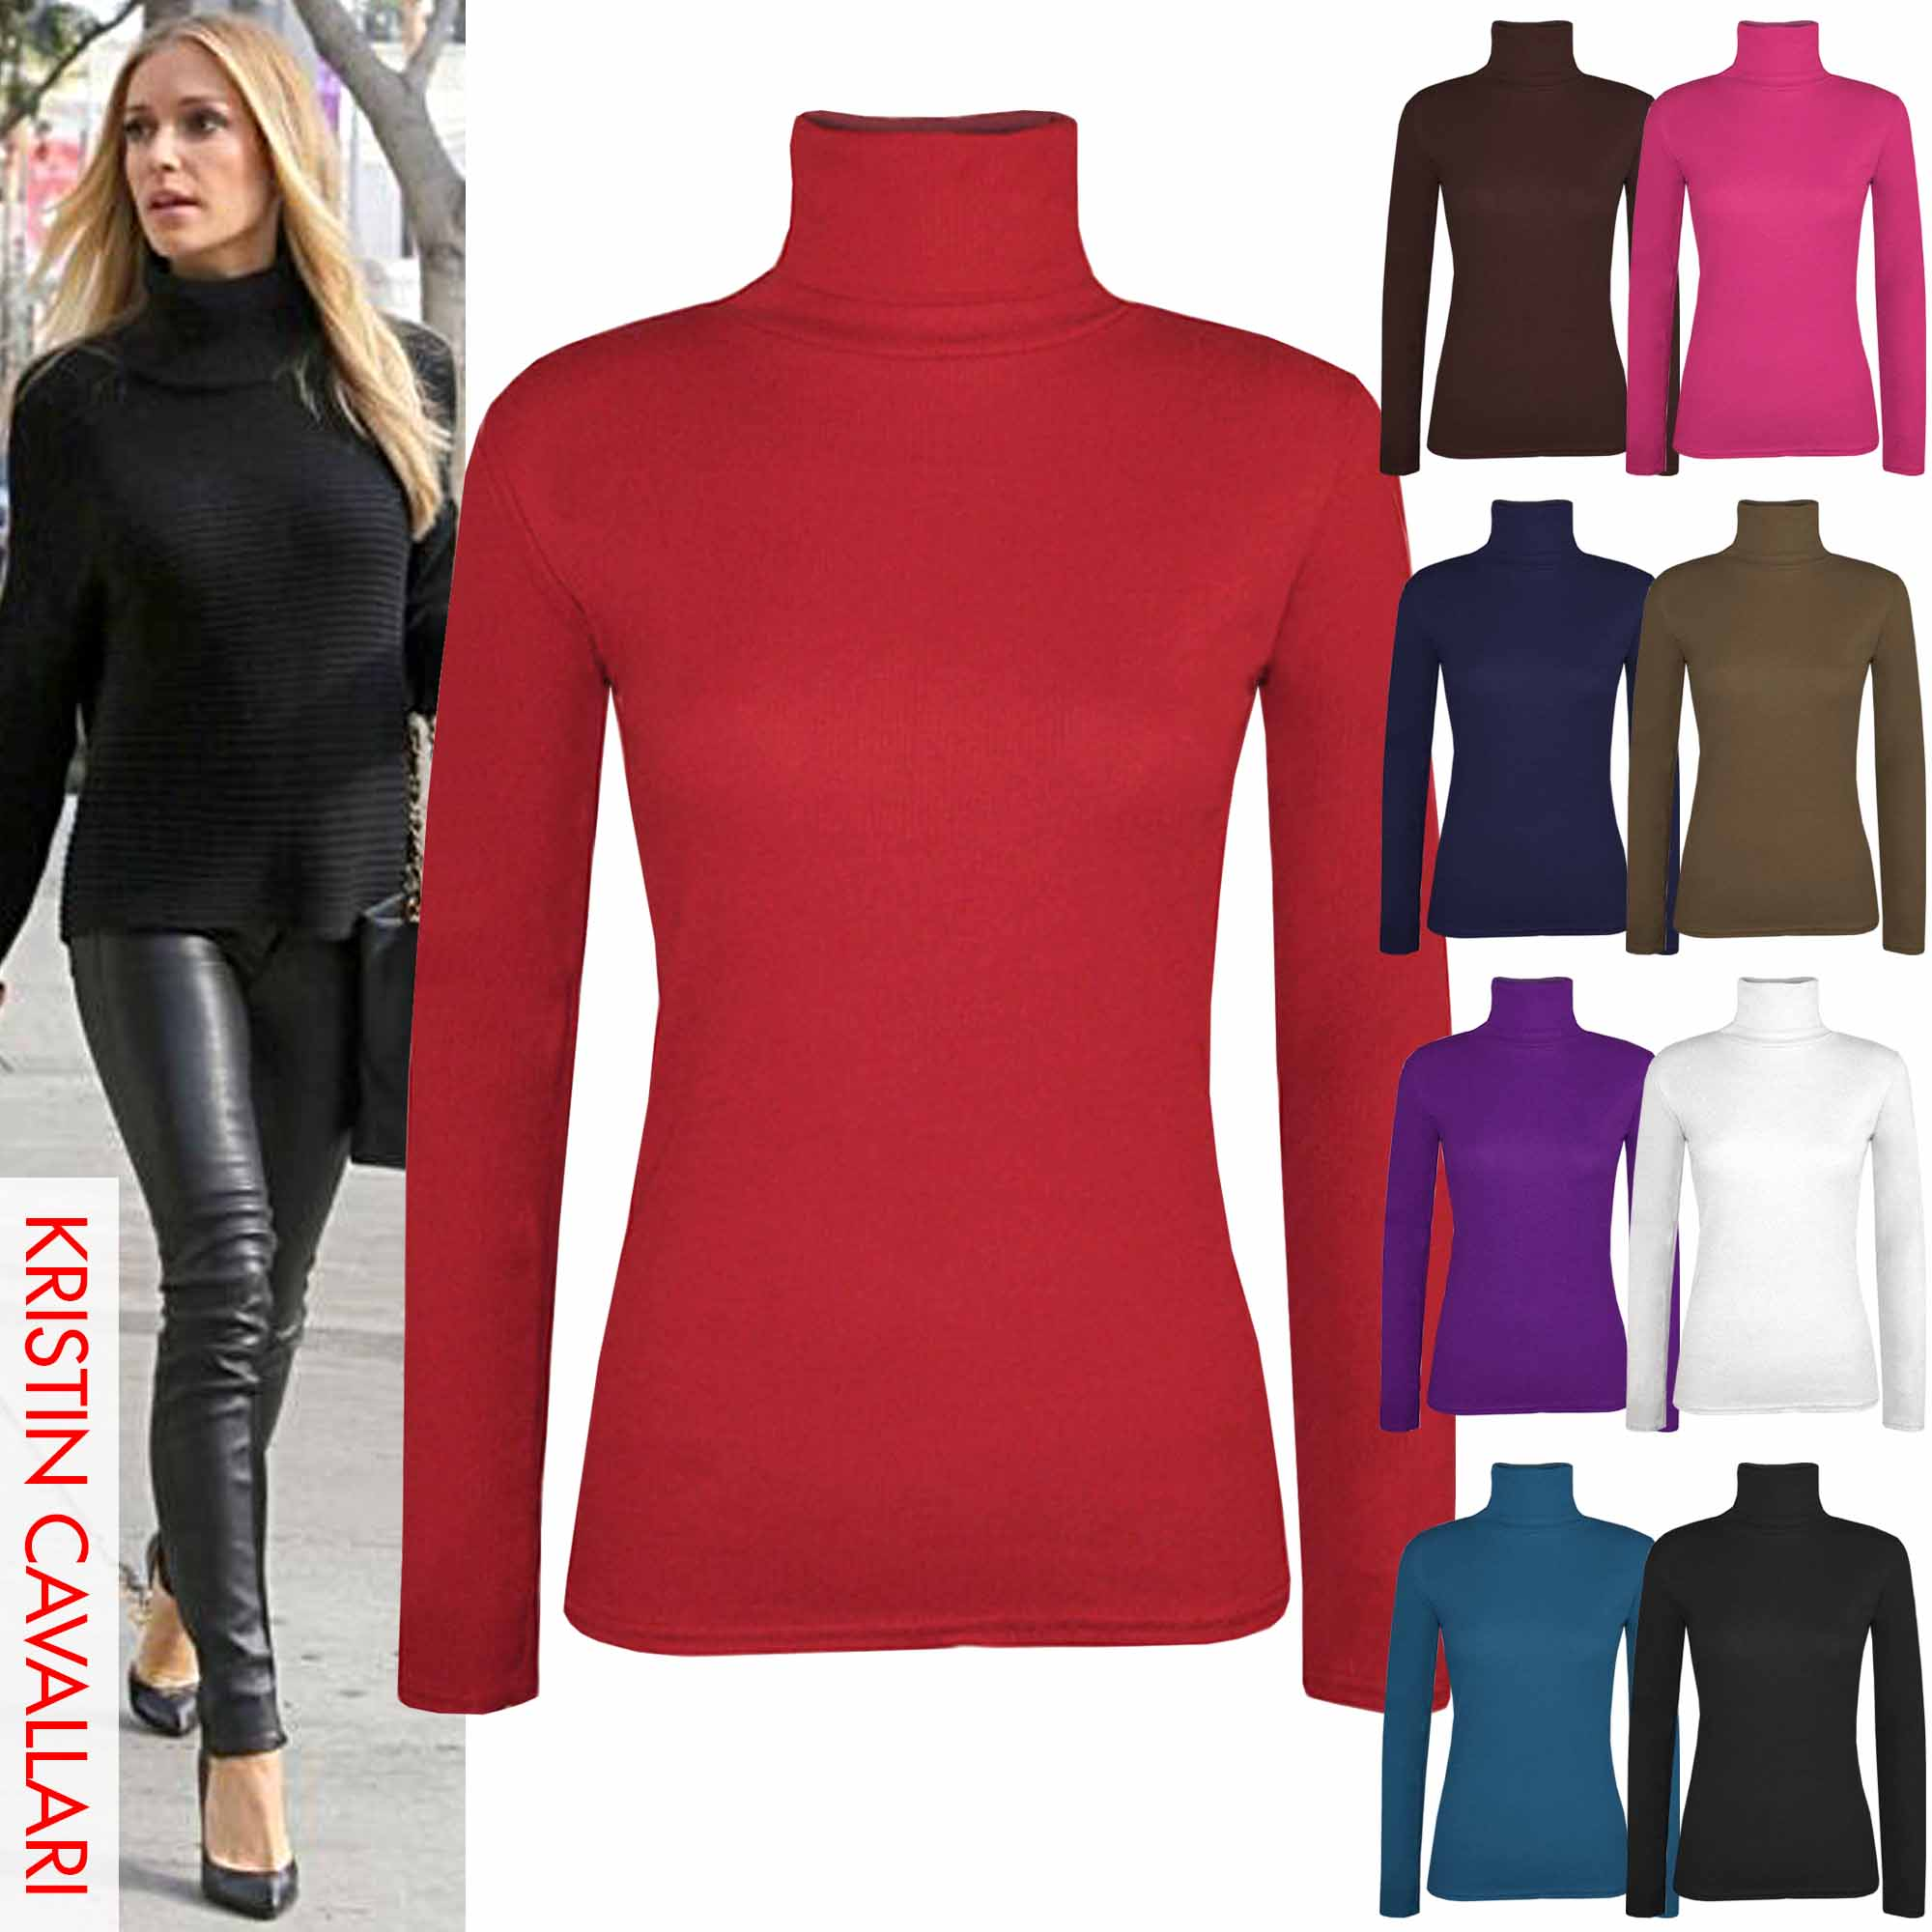 Our classic polo neck jumpers in women's cashmere are great for skiing holidays, and colder climates. These polo neck jumpers for women will keep your seasonal wardrobe stylish and comfortable.